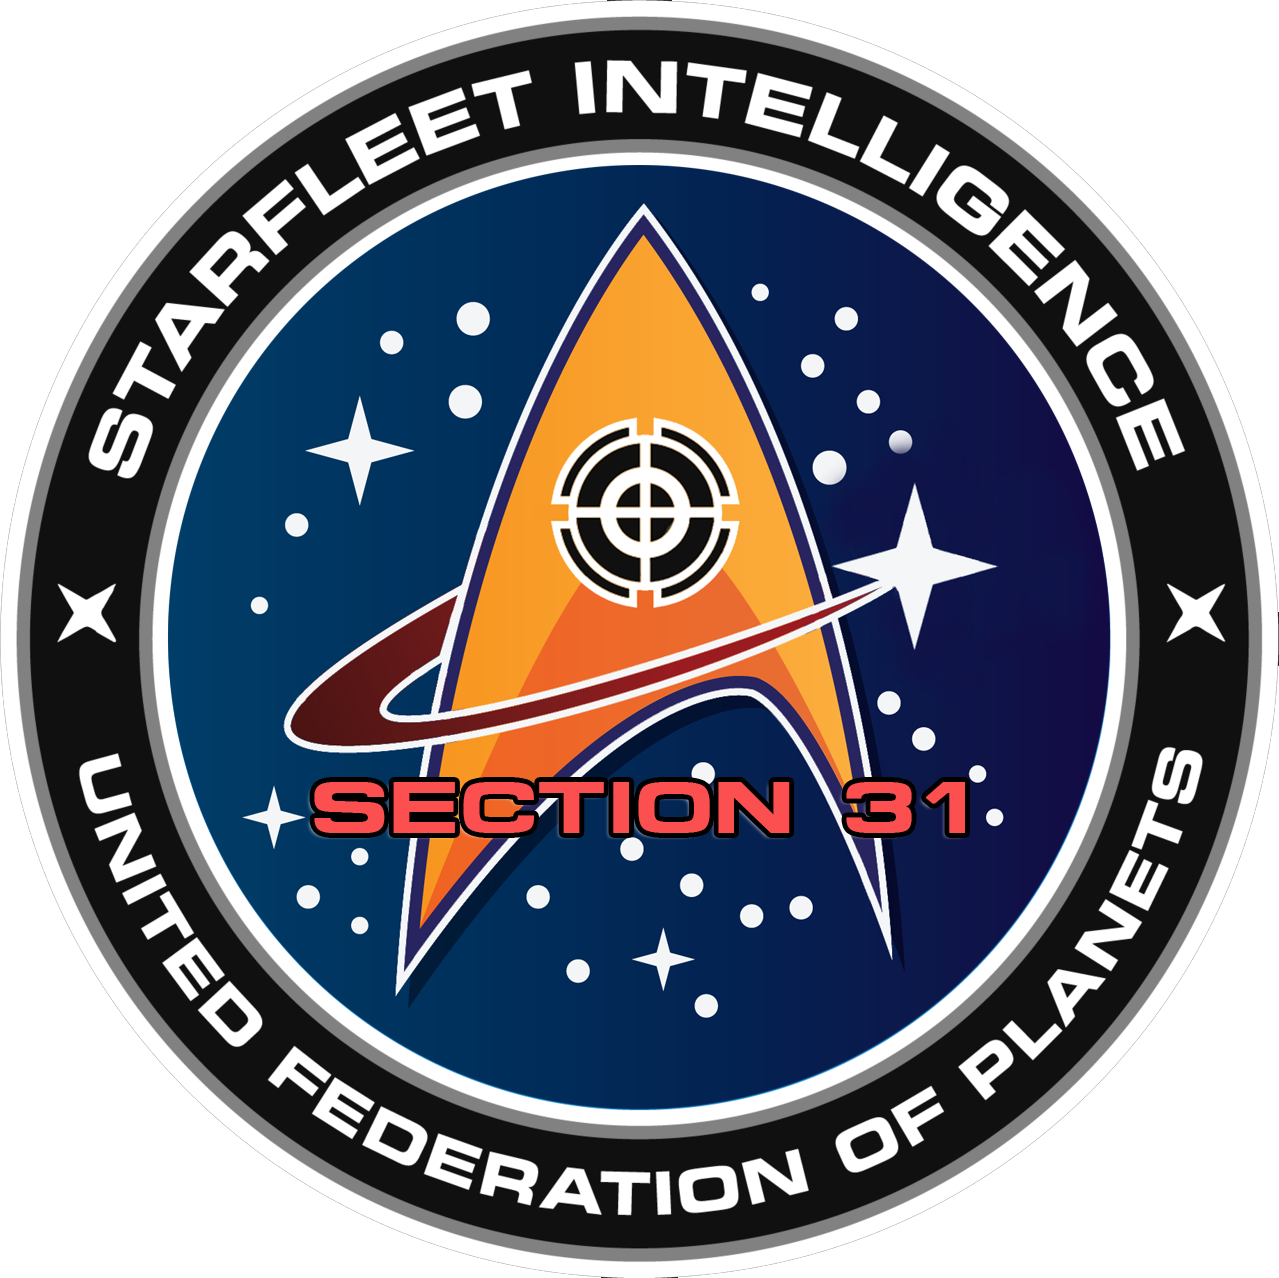 This award identifies a member as a Section 31 Agent who is an Official Moderator for the interfleet chat channel K-7